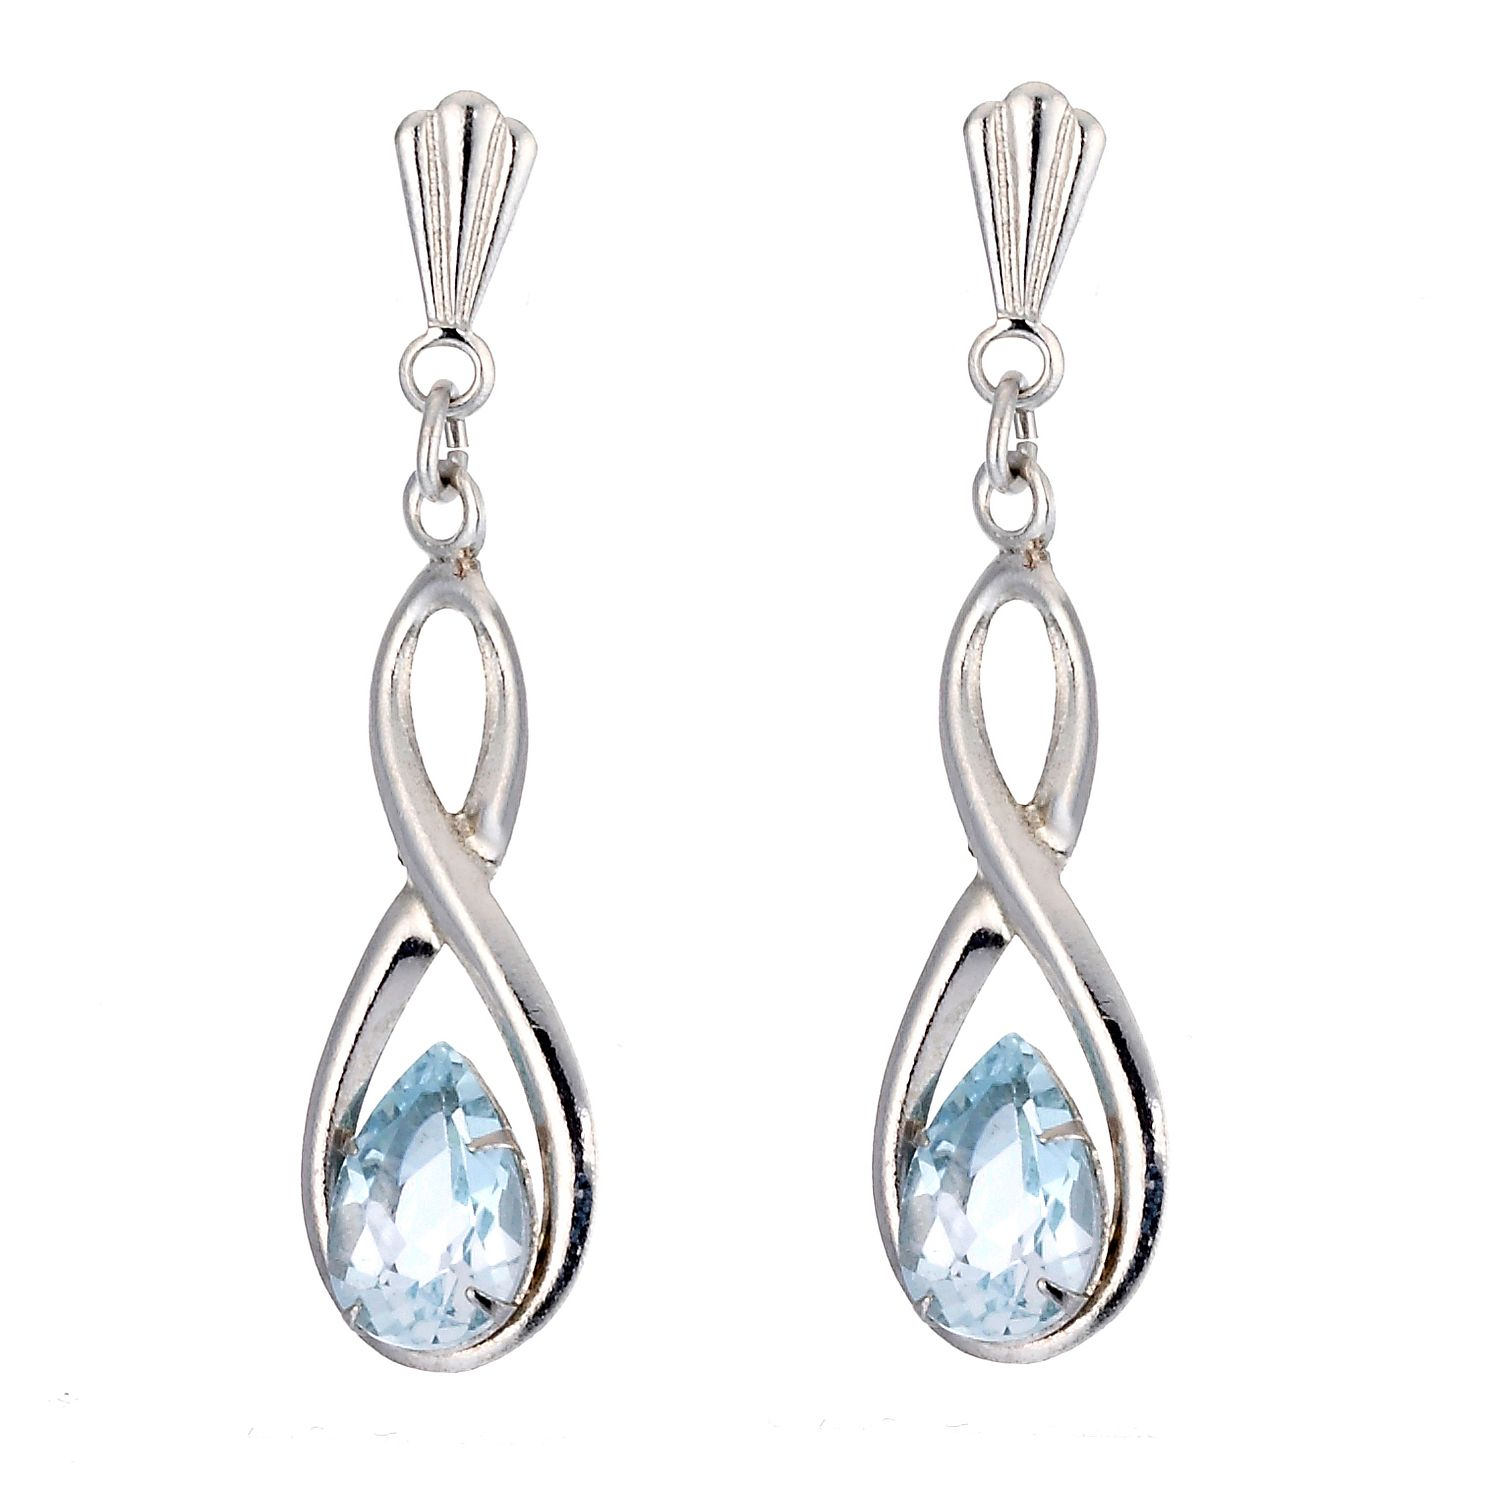 jewelry earrings encore tacori stud diamond jewellery